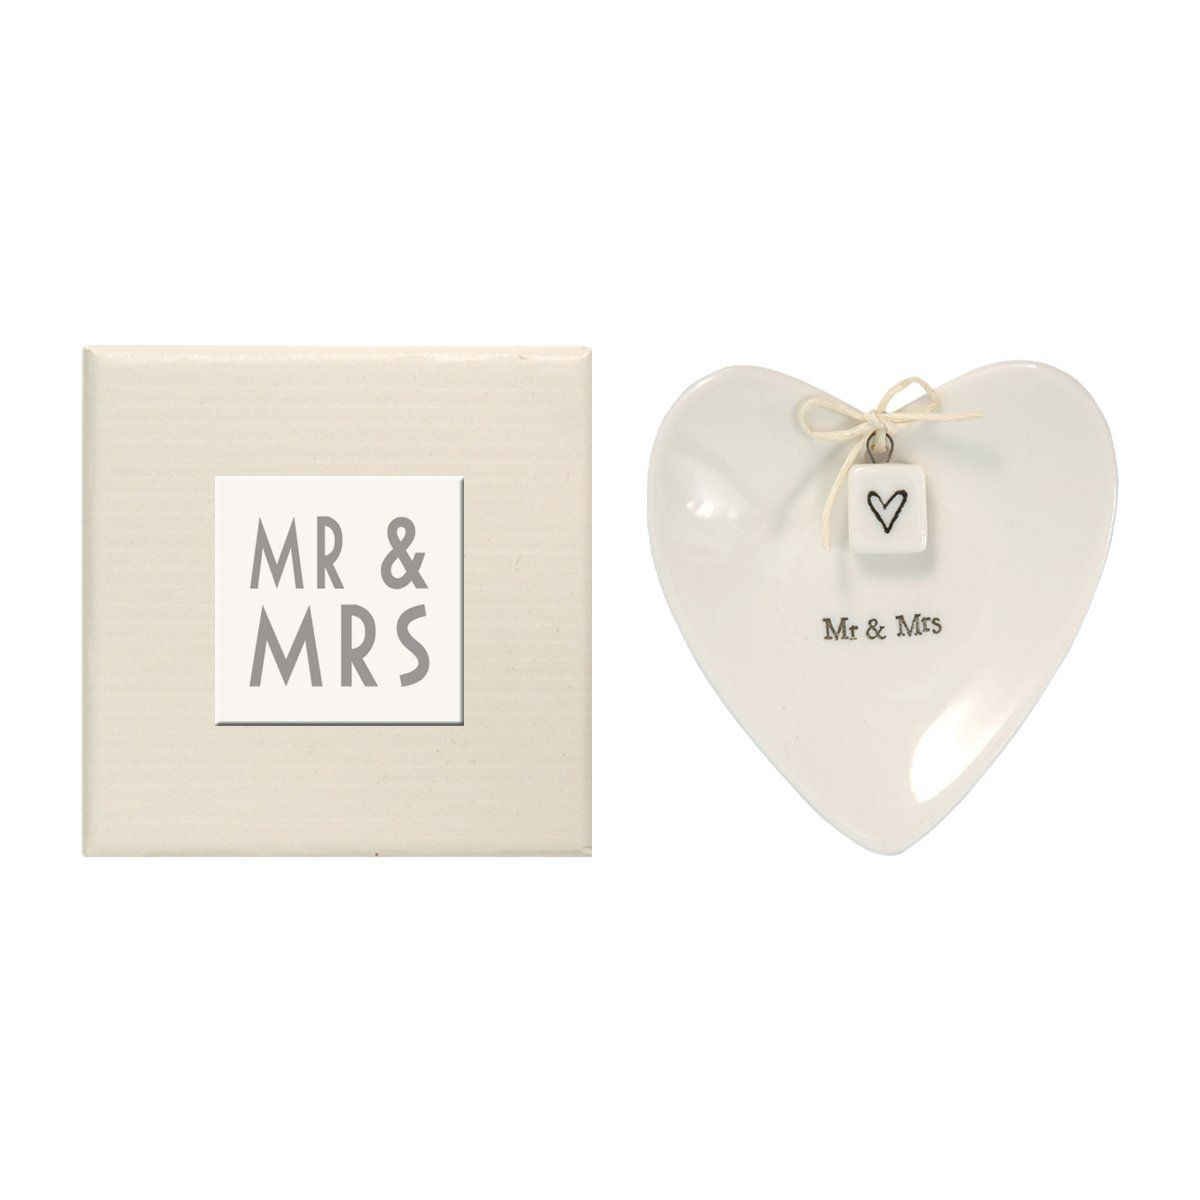 Wedding Gift Ideas Second Marriage: Second Wedding Anniversary Gift Ideas